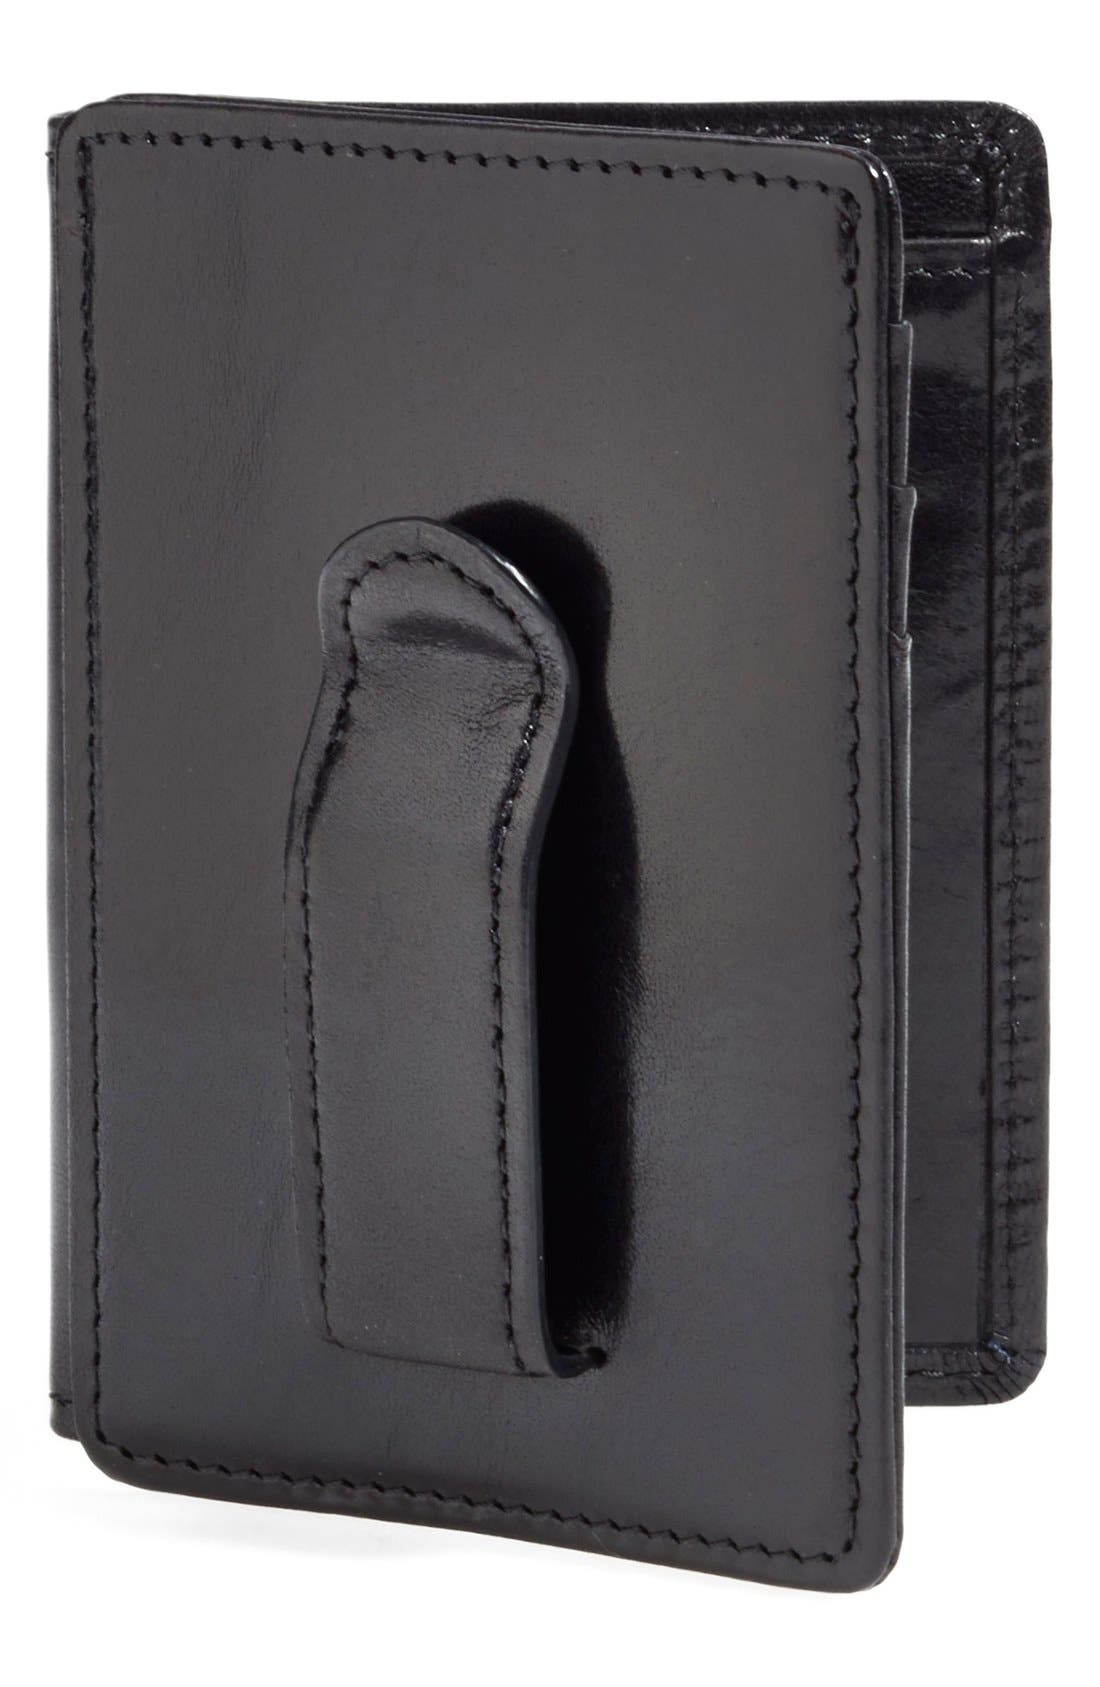 Alternate Image 1 Selected - Bosca 'Old Leather' Front Pocket ID Wallet